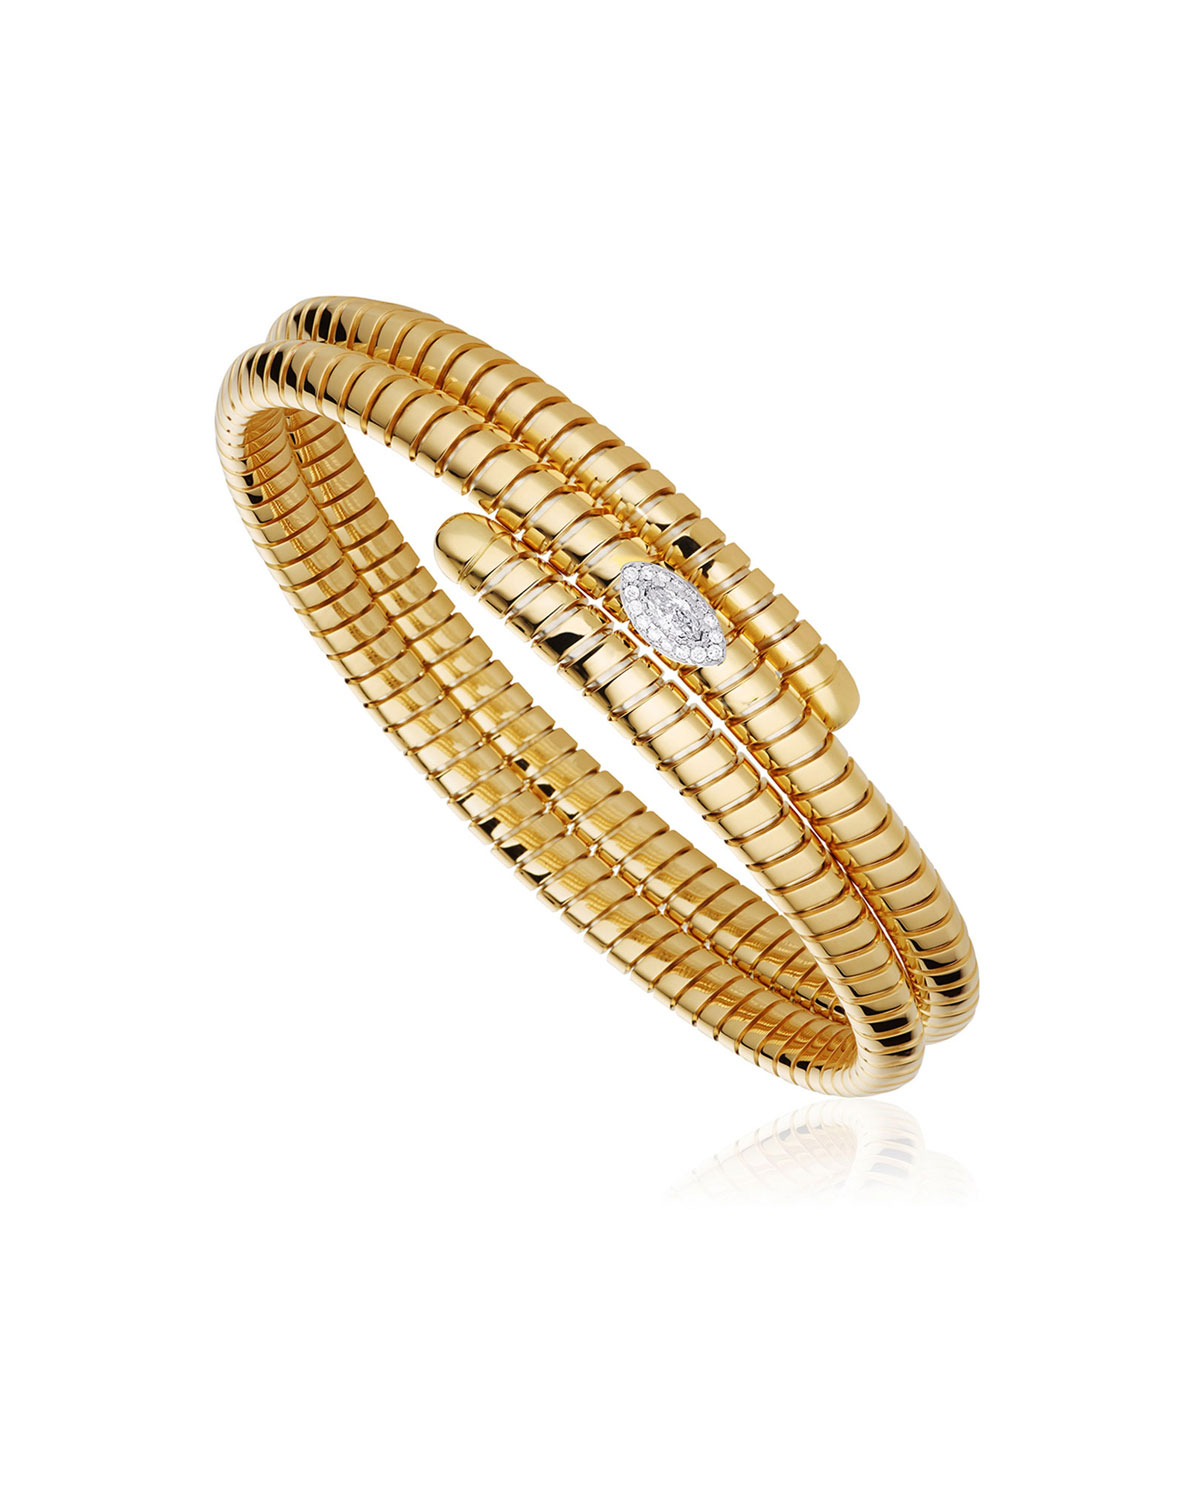 MARINA B Trisola 18K Diamond Triple Navetta Bangle, Size L